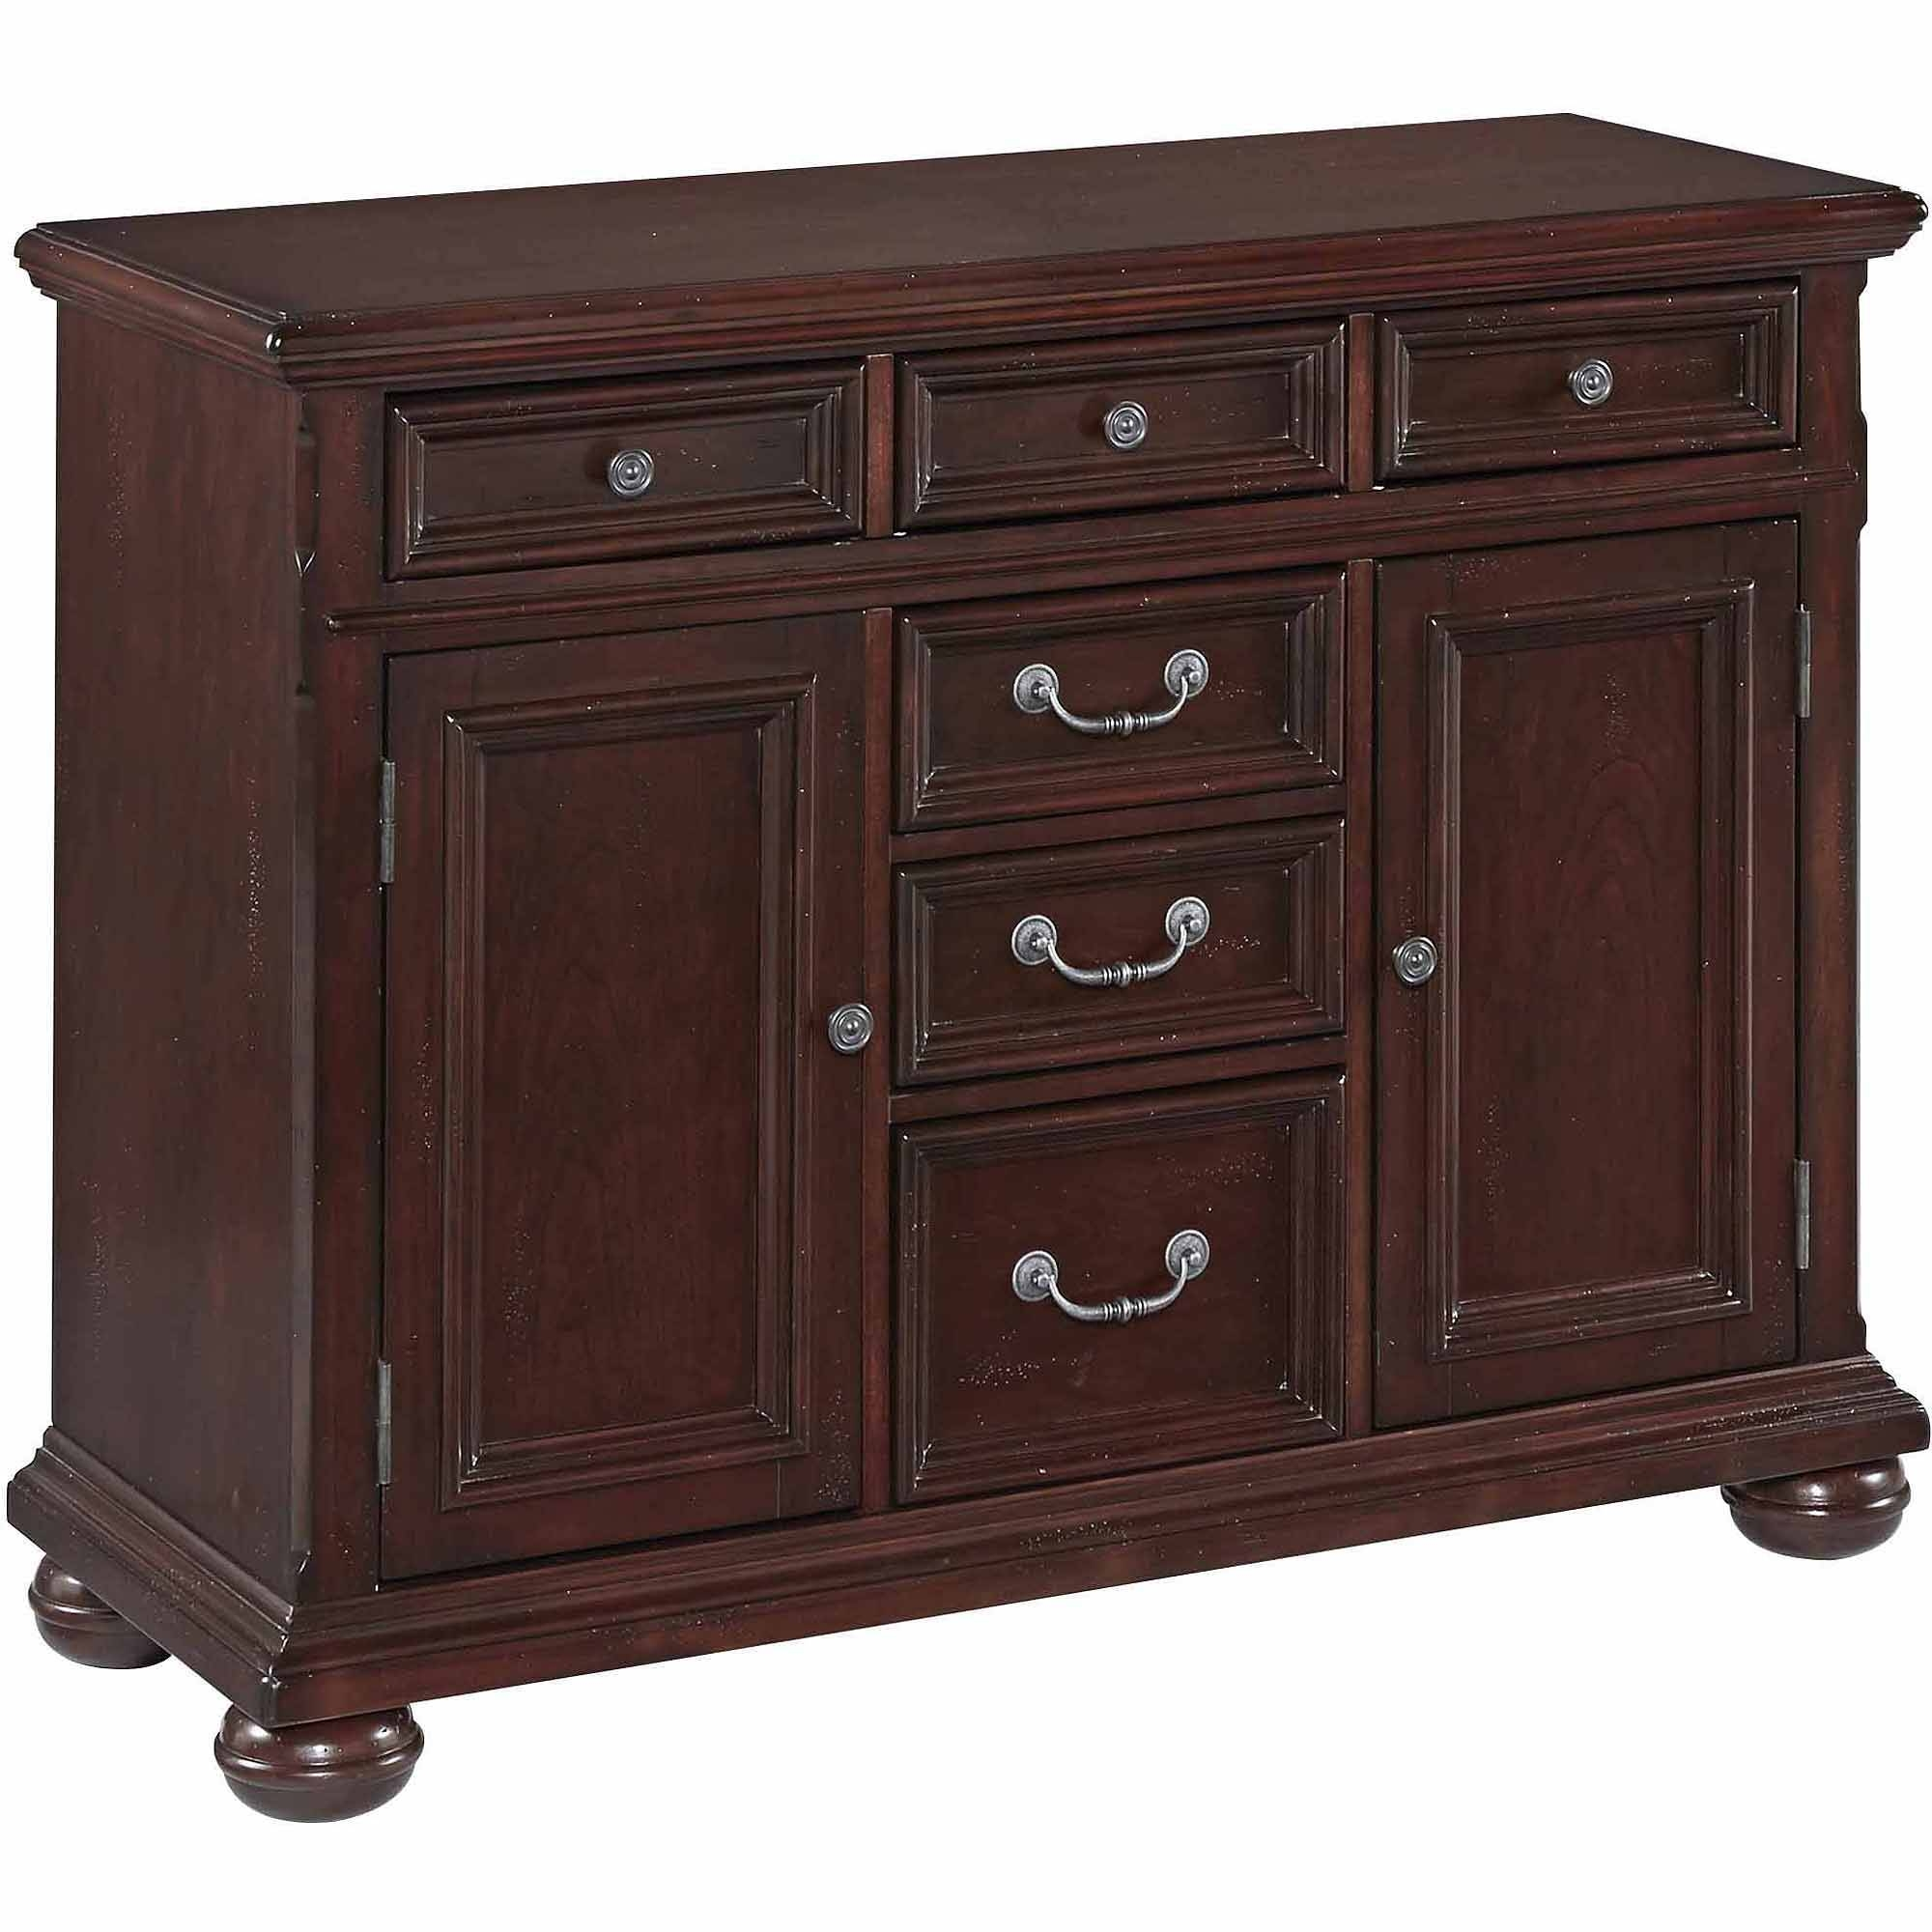 Sideboards & Buffets - Walmart within 36 Inch Sideboards (Image 14 of 15)